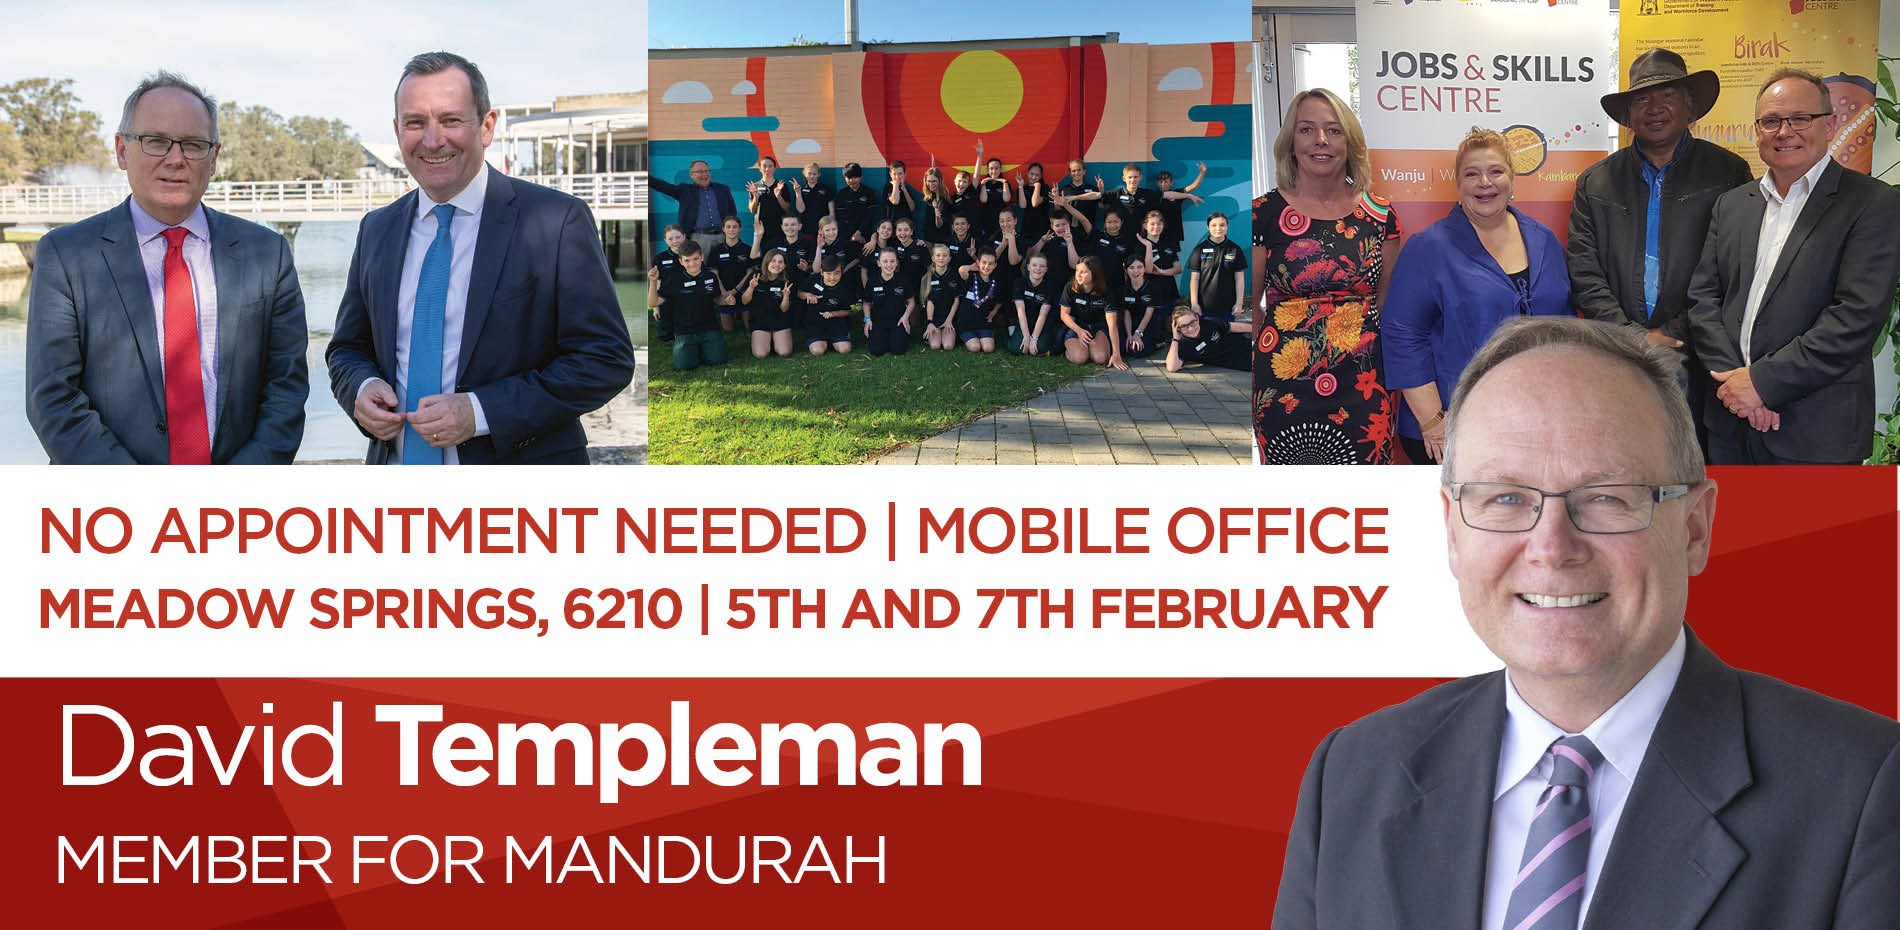 Meadow Springs Mobile Office - No Appointment Needed! Main Image